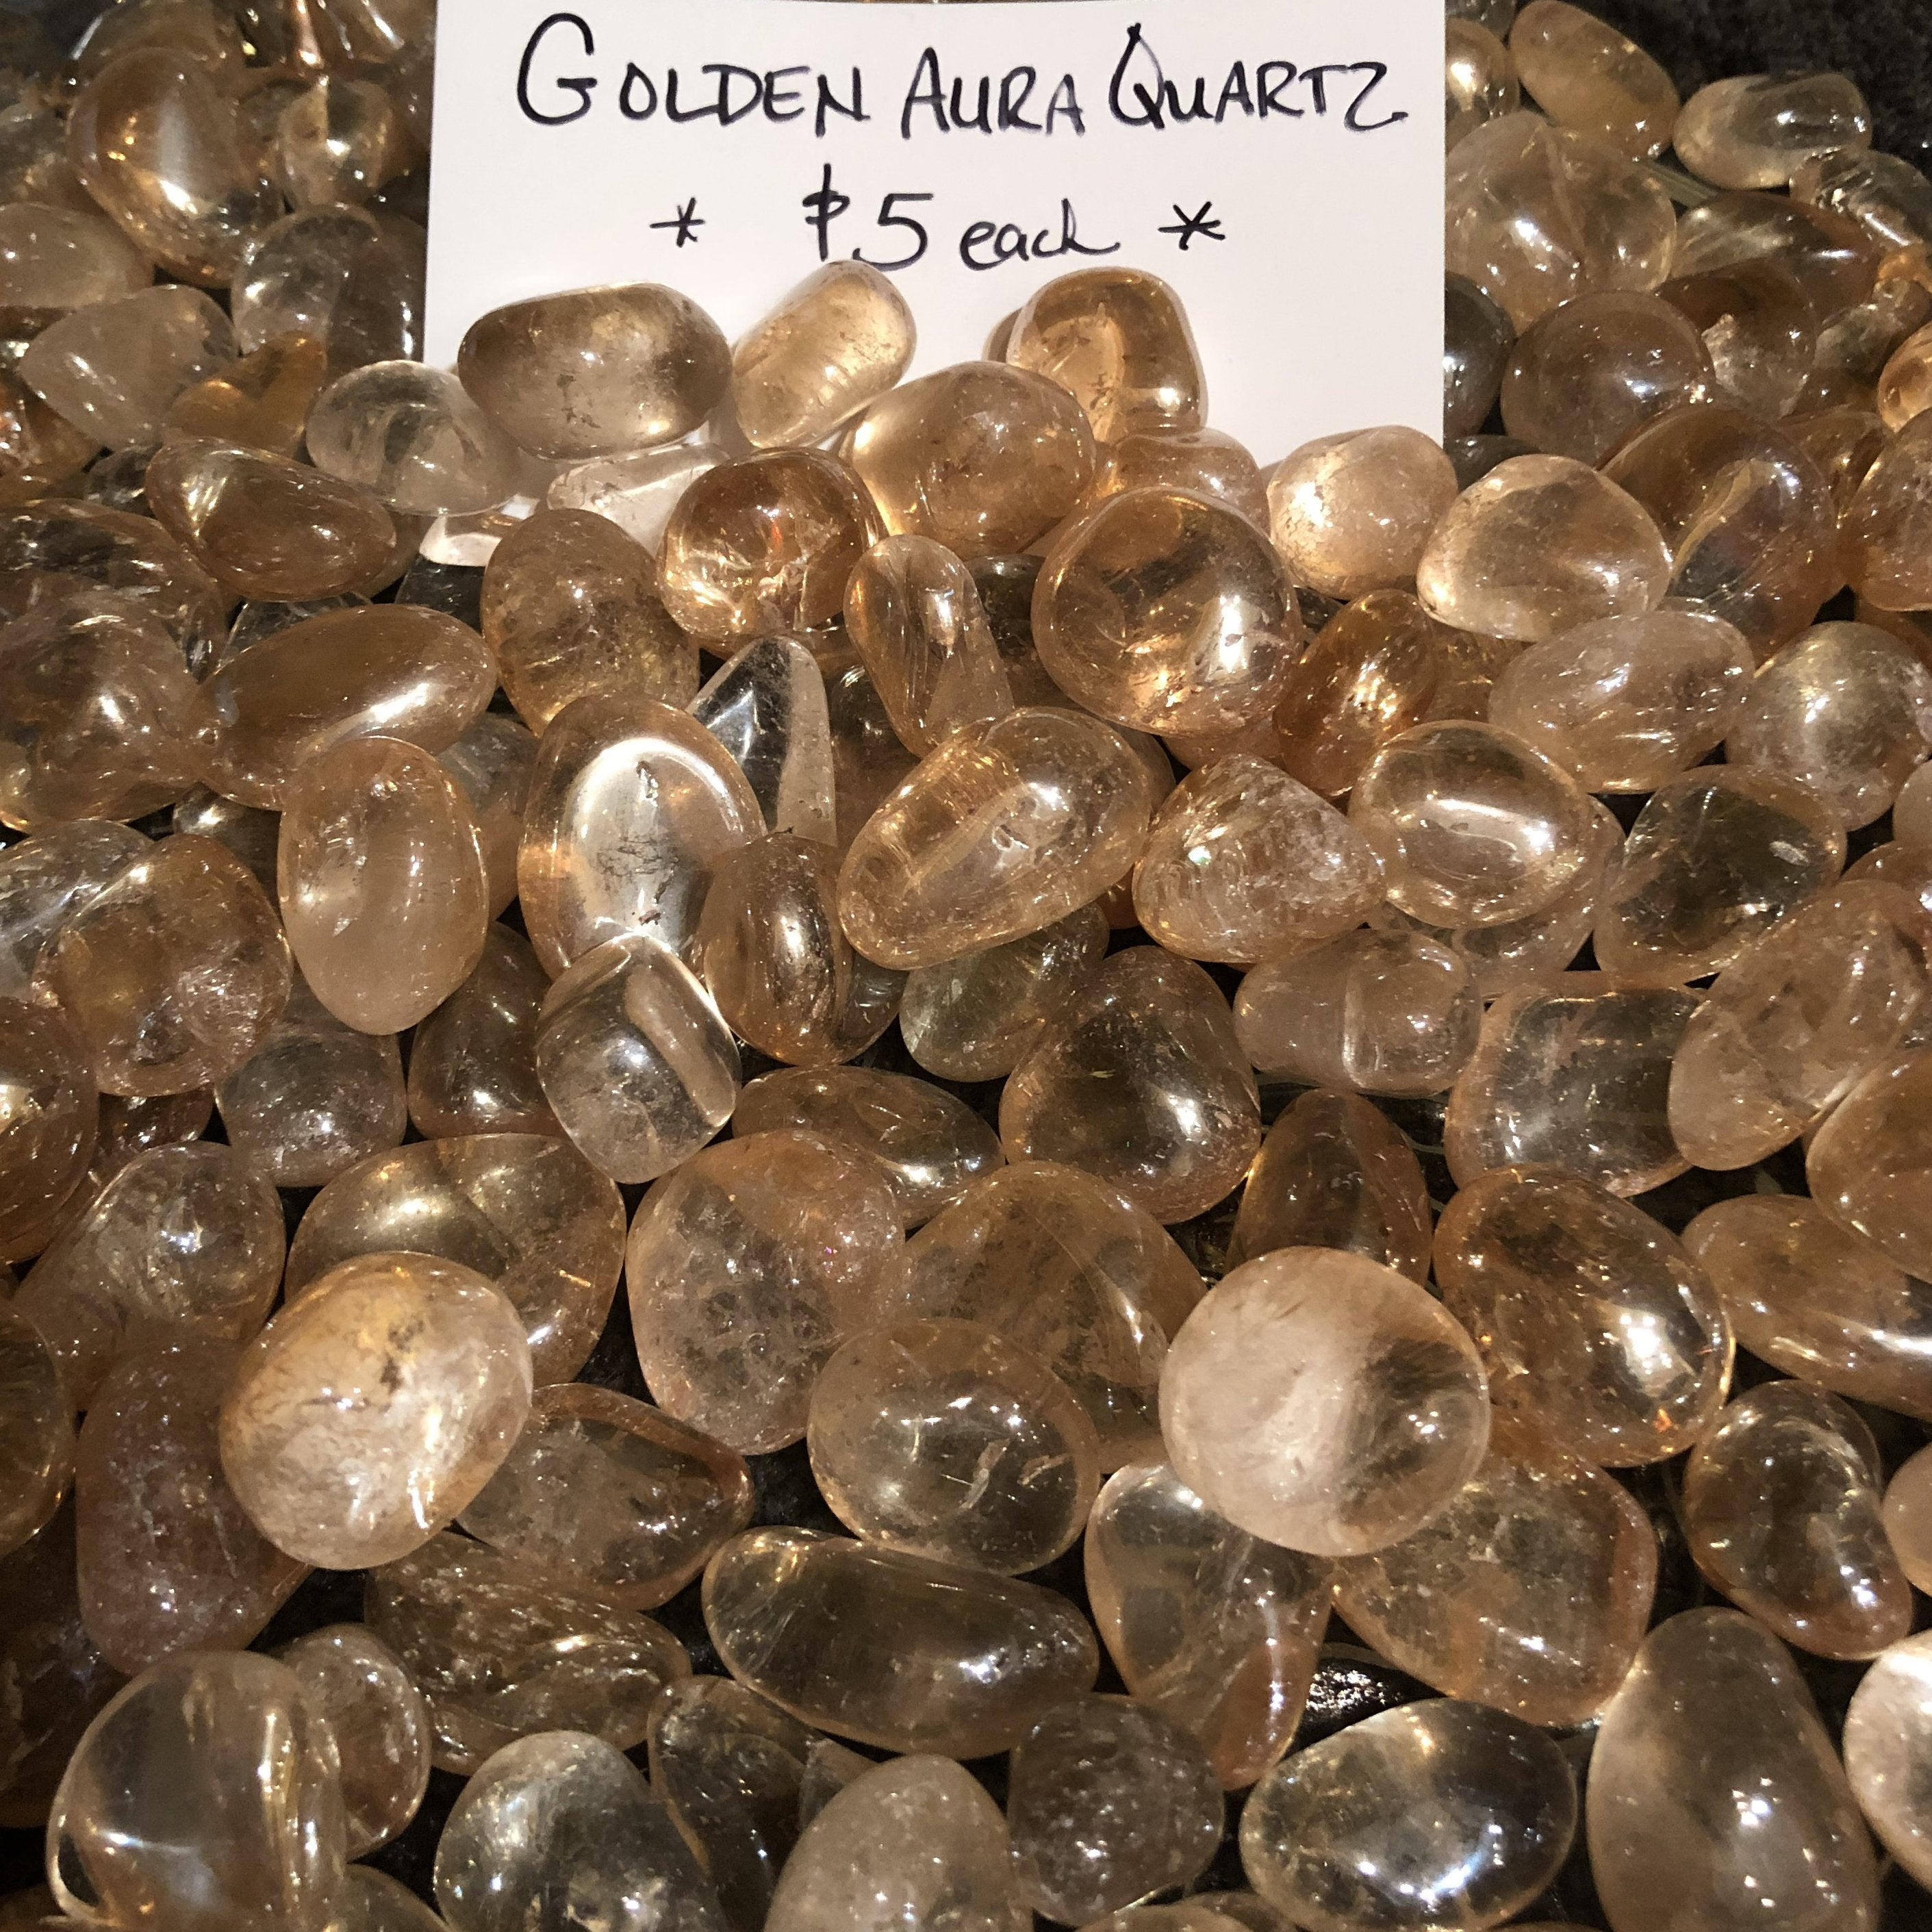 Golden Aura Quartz